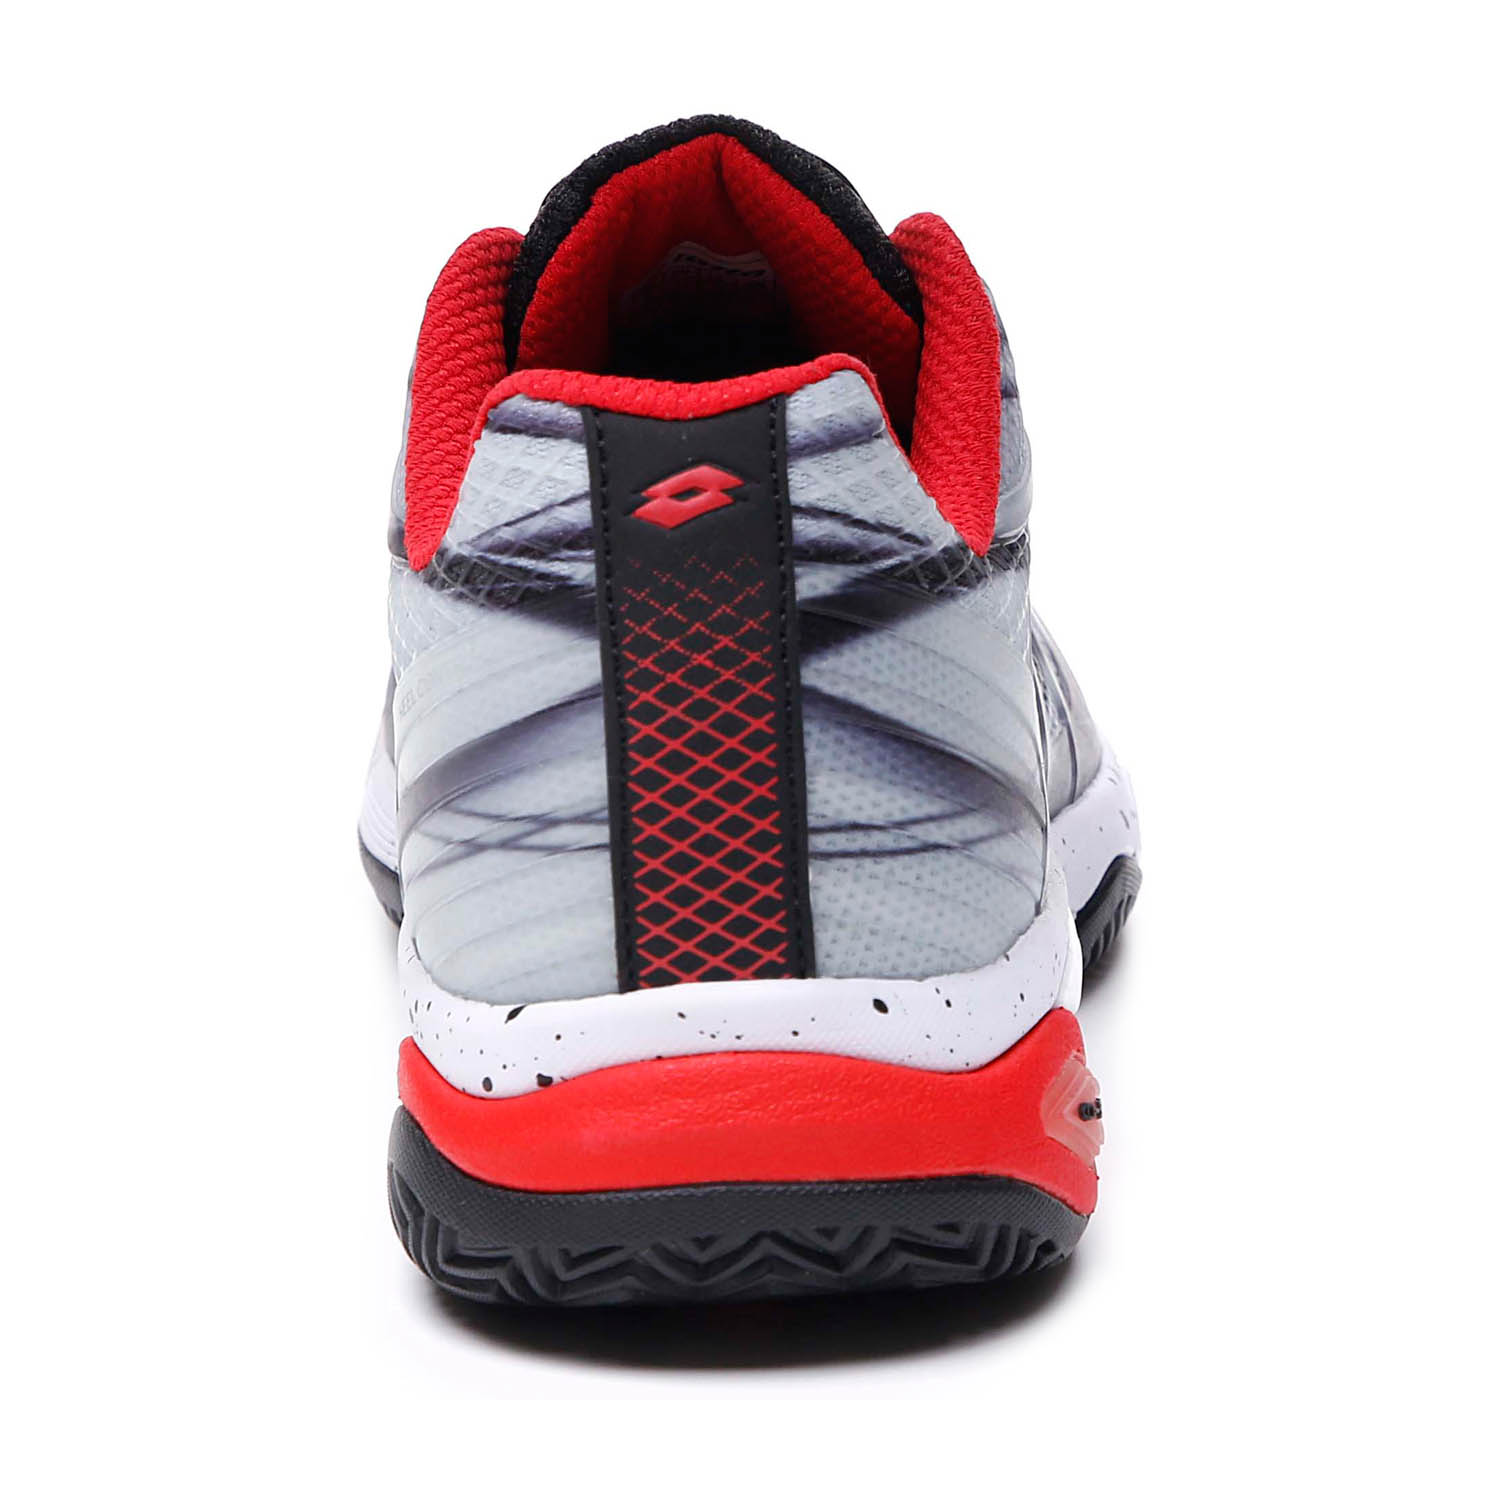 Lotto Mirage 300 Clay - All Black/All White/Red Poppy